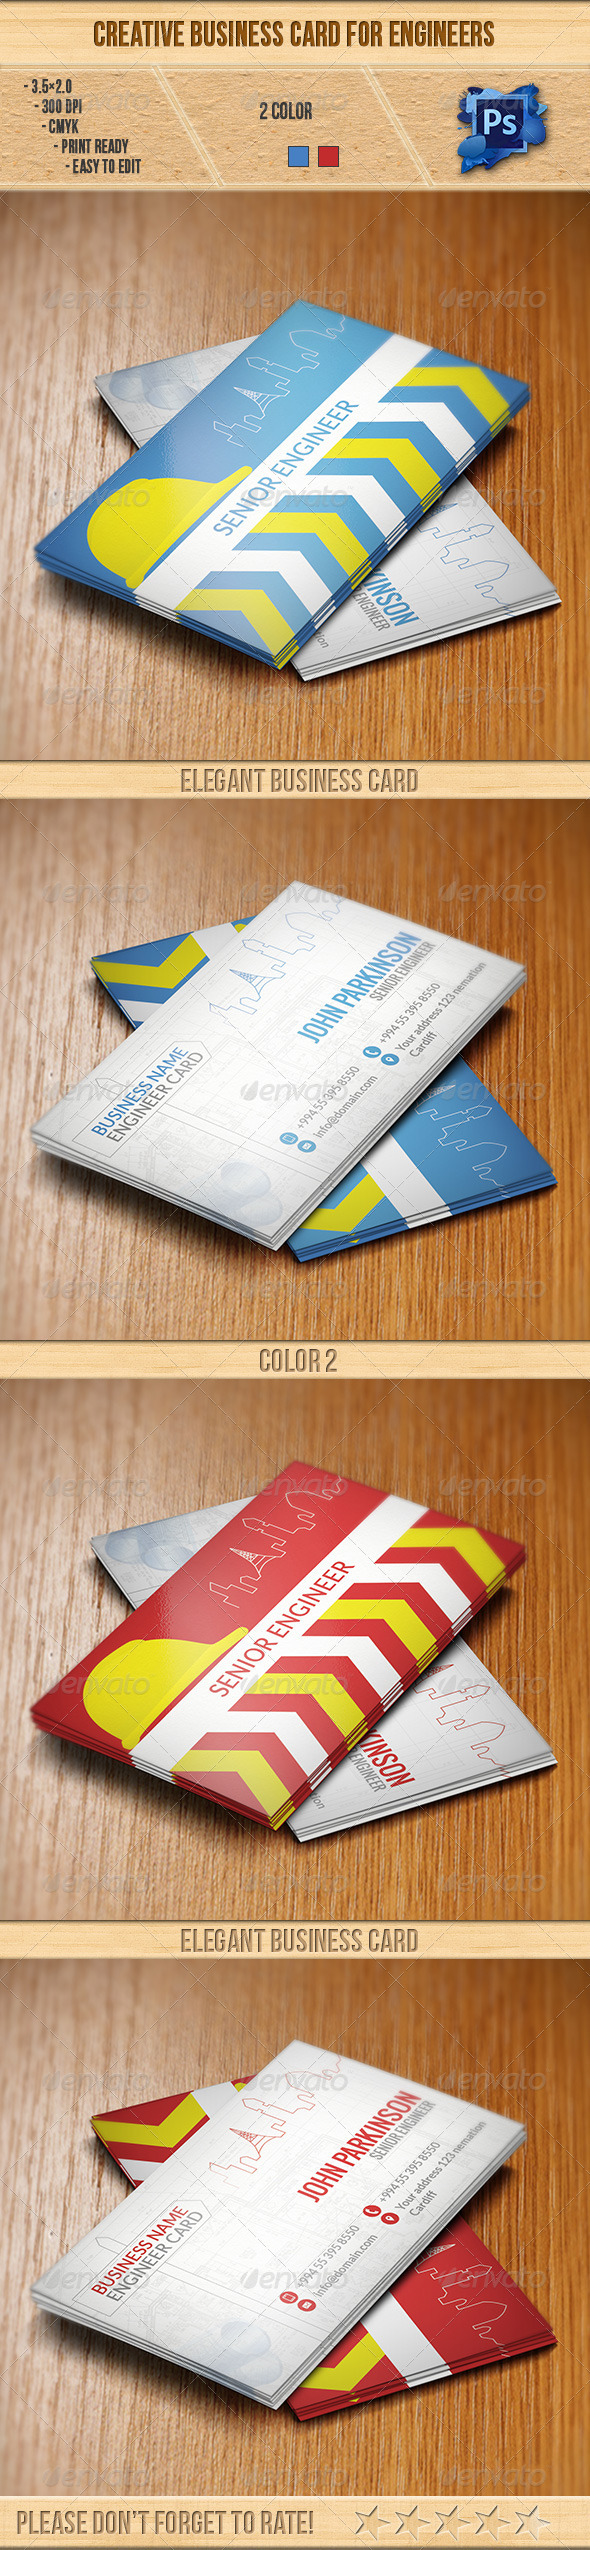 GraphicRiver Creative Business Card for Engineers 6280978